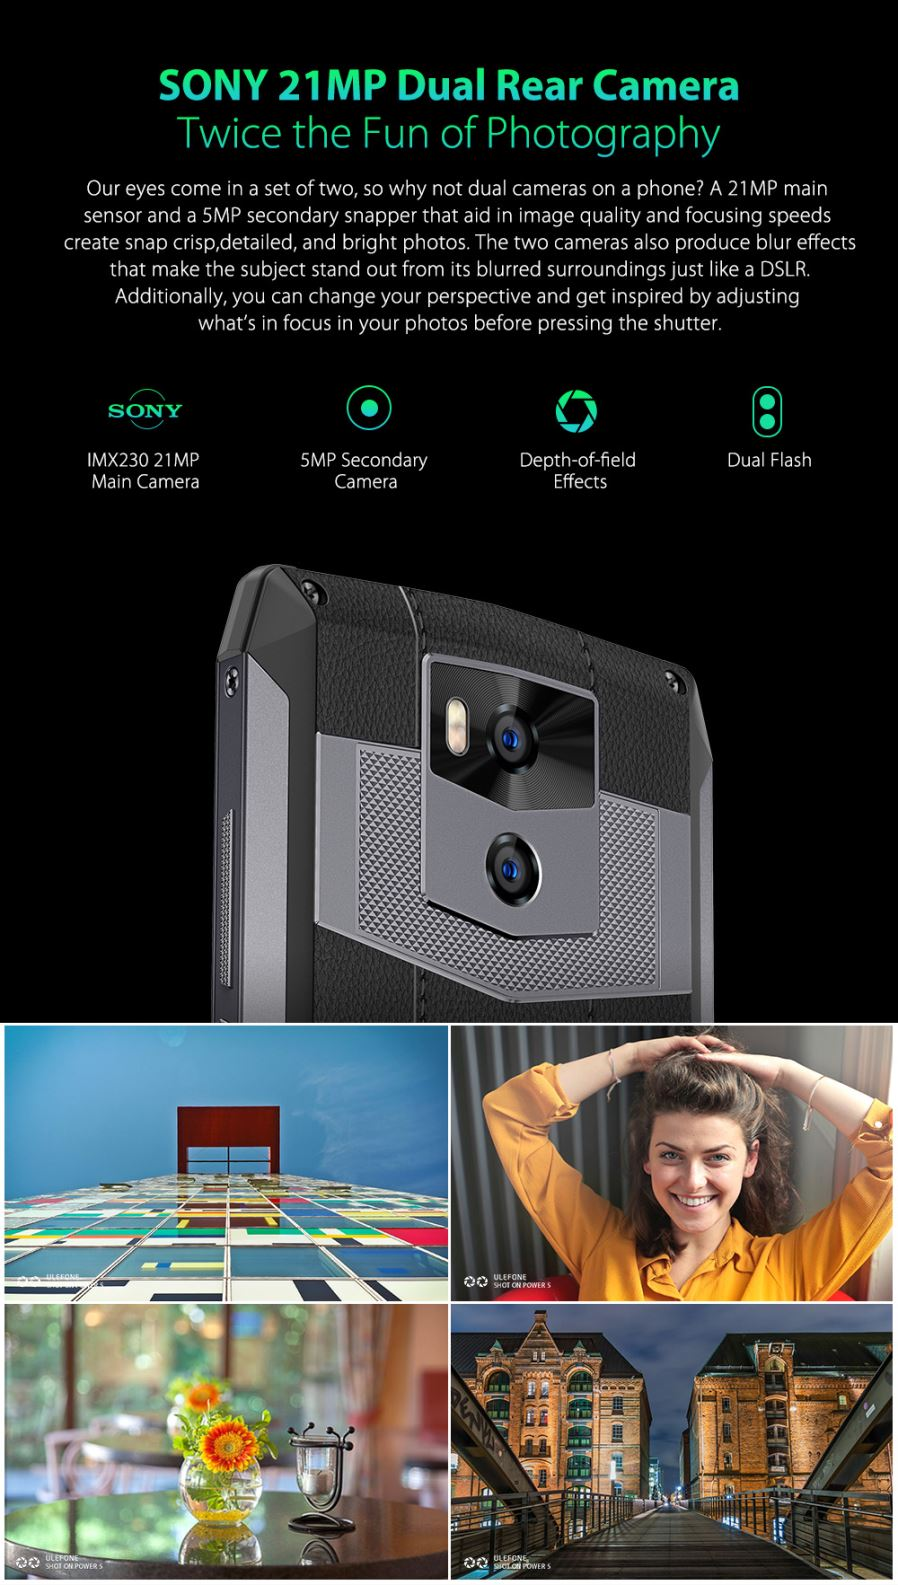 Ulefone Armor 3 57 Android 81 Waterproof 103000 Mah Battery Lg K10 Power 4g Lte 55ampquot 2 16gb 13 5mp General